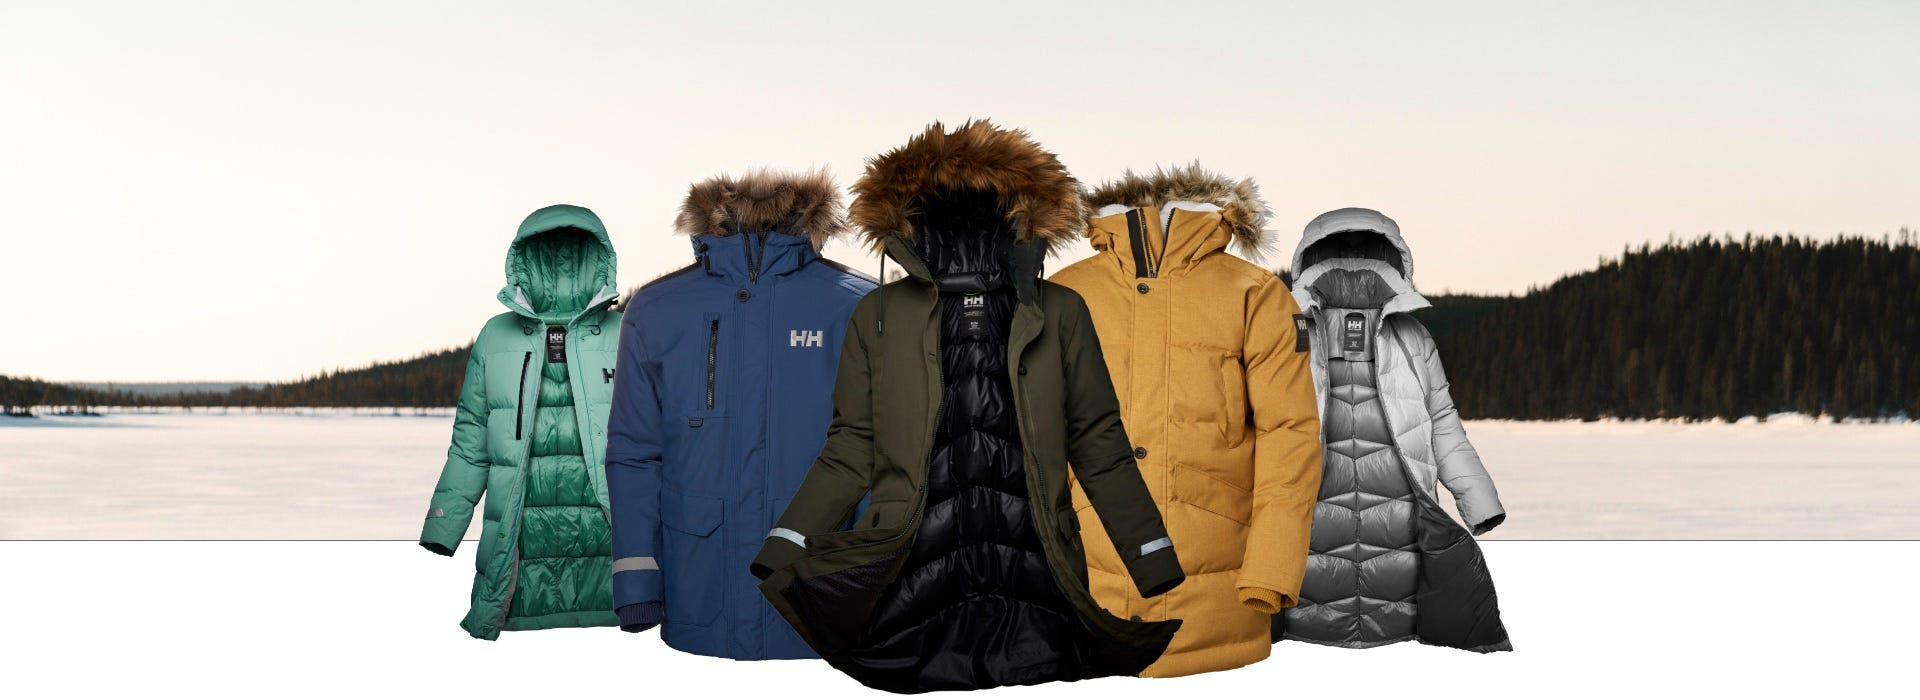 best store for winter clothes winter clothing companies